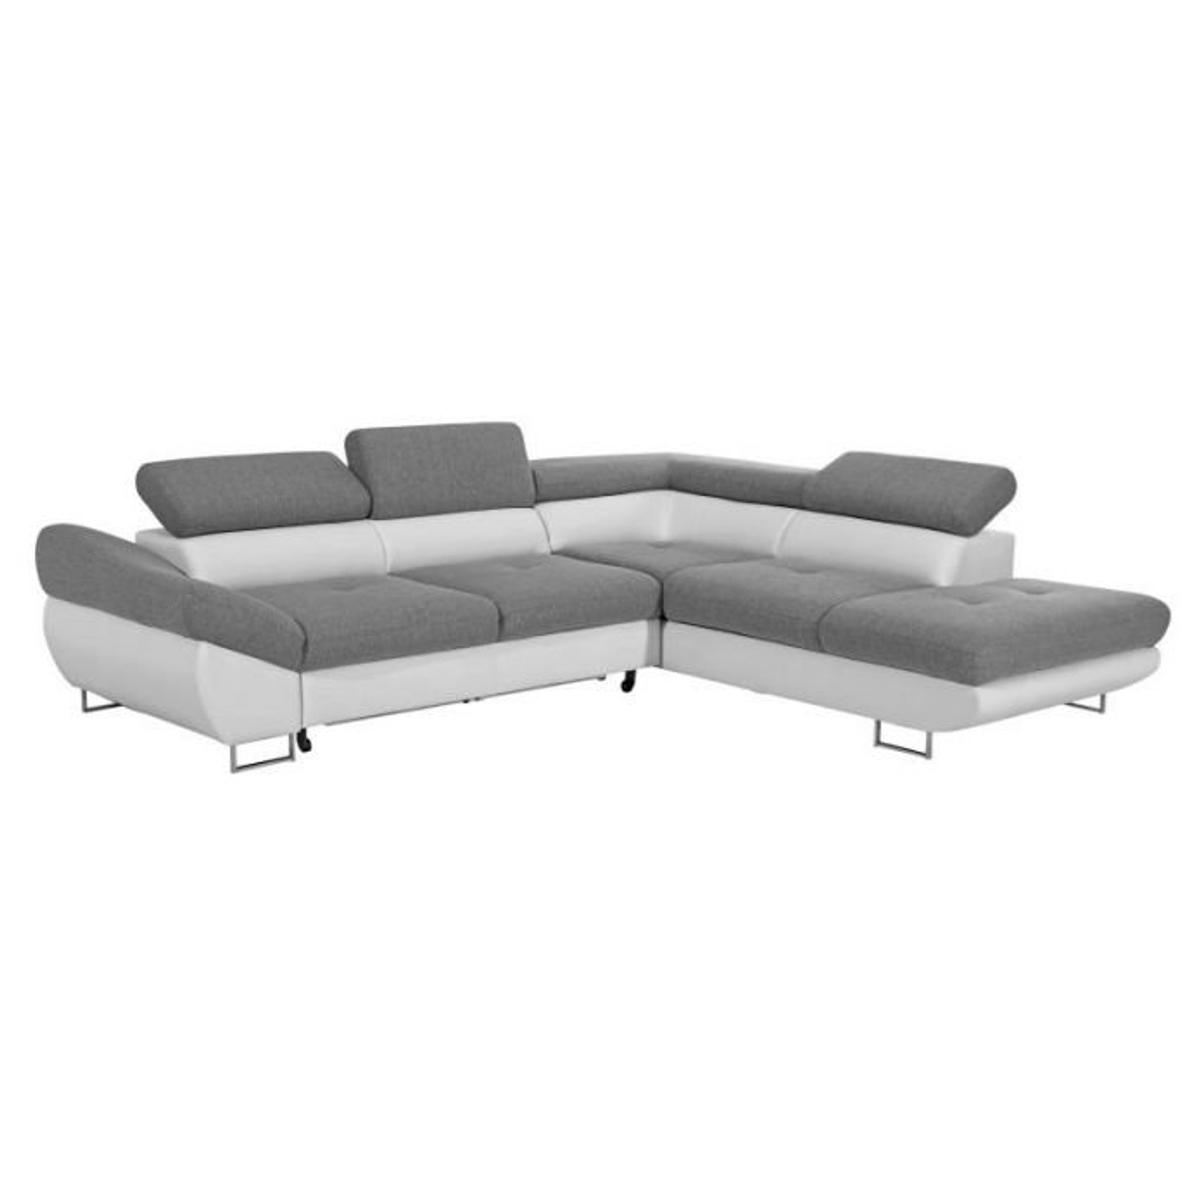 Ecksofa In Weiss Grau In 26121 Oldenburg For 699 00 For Sale Shpock